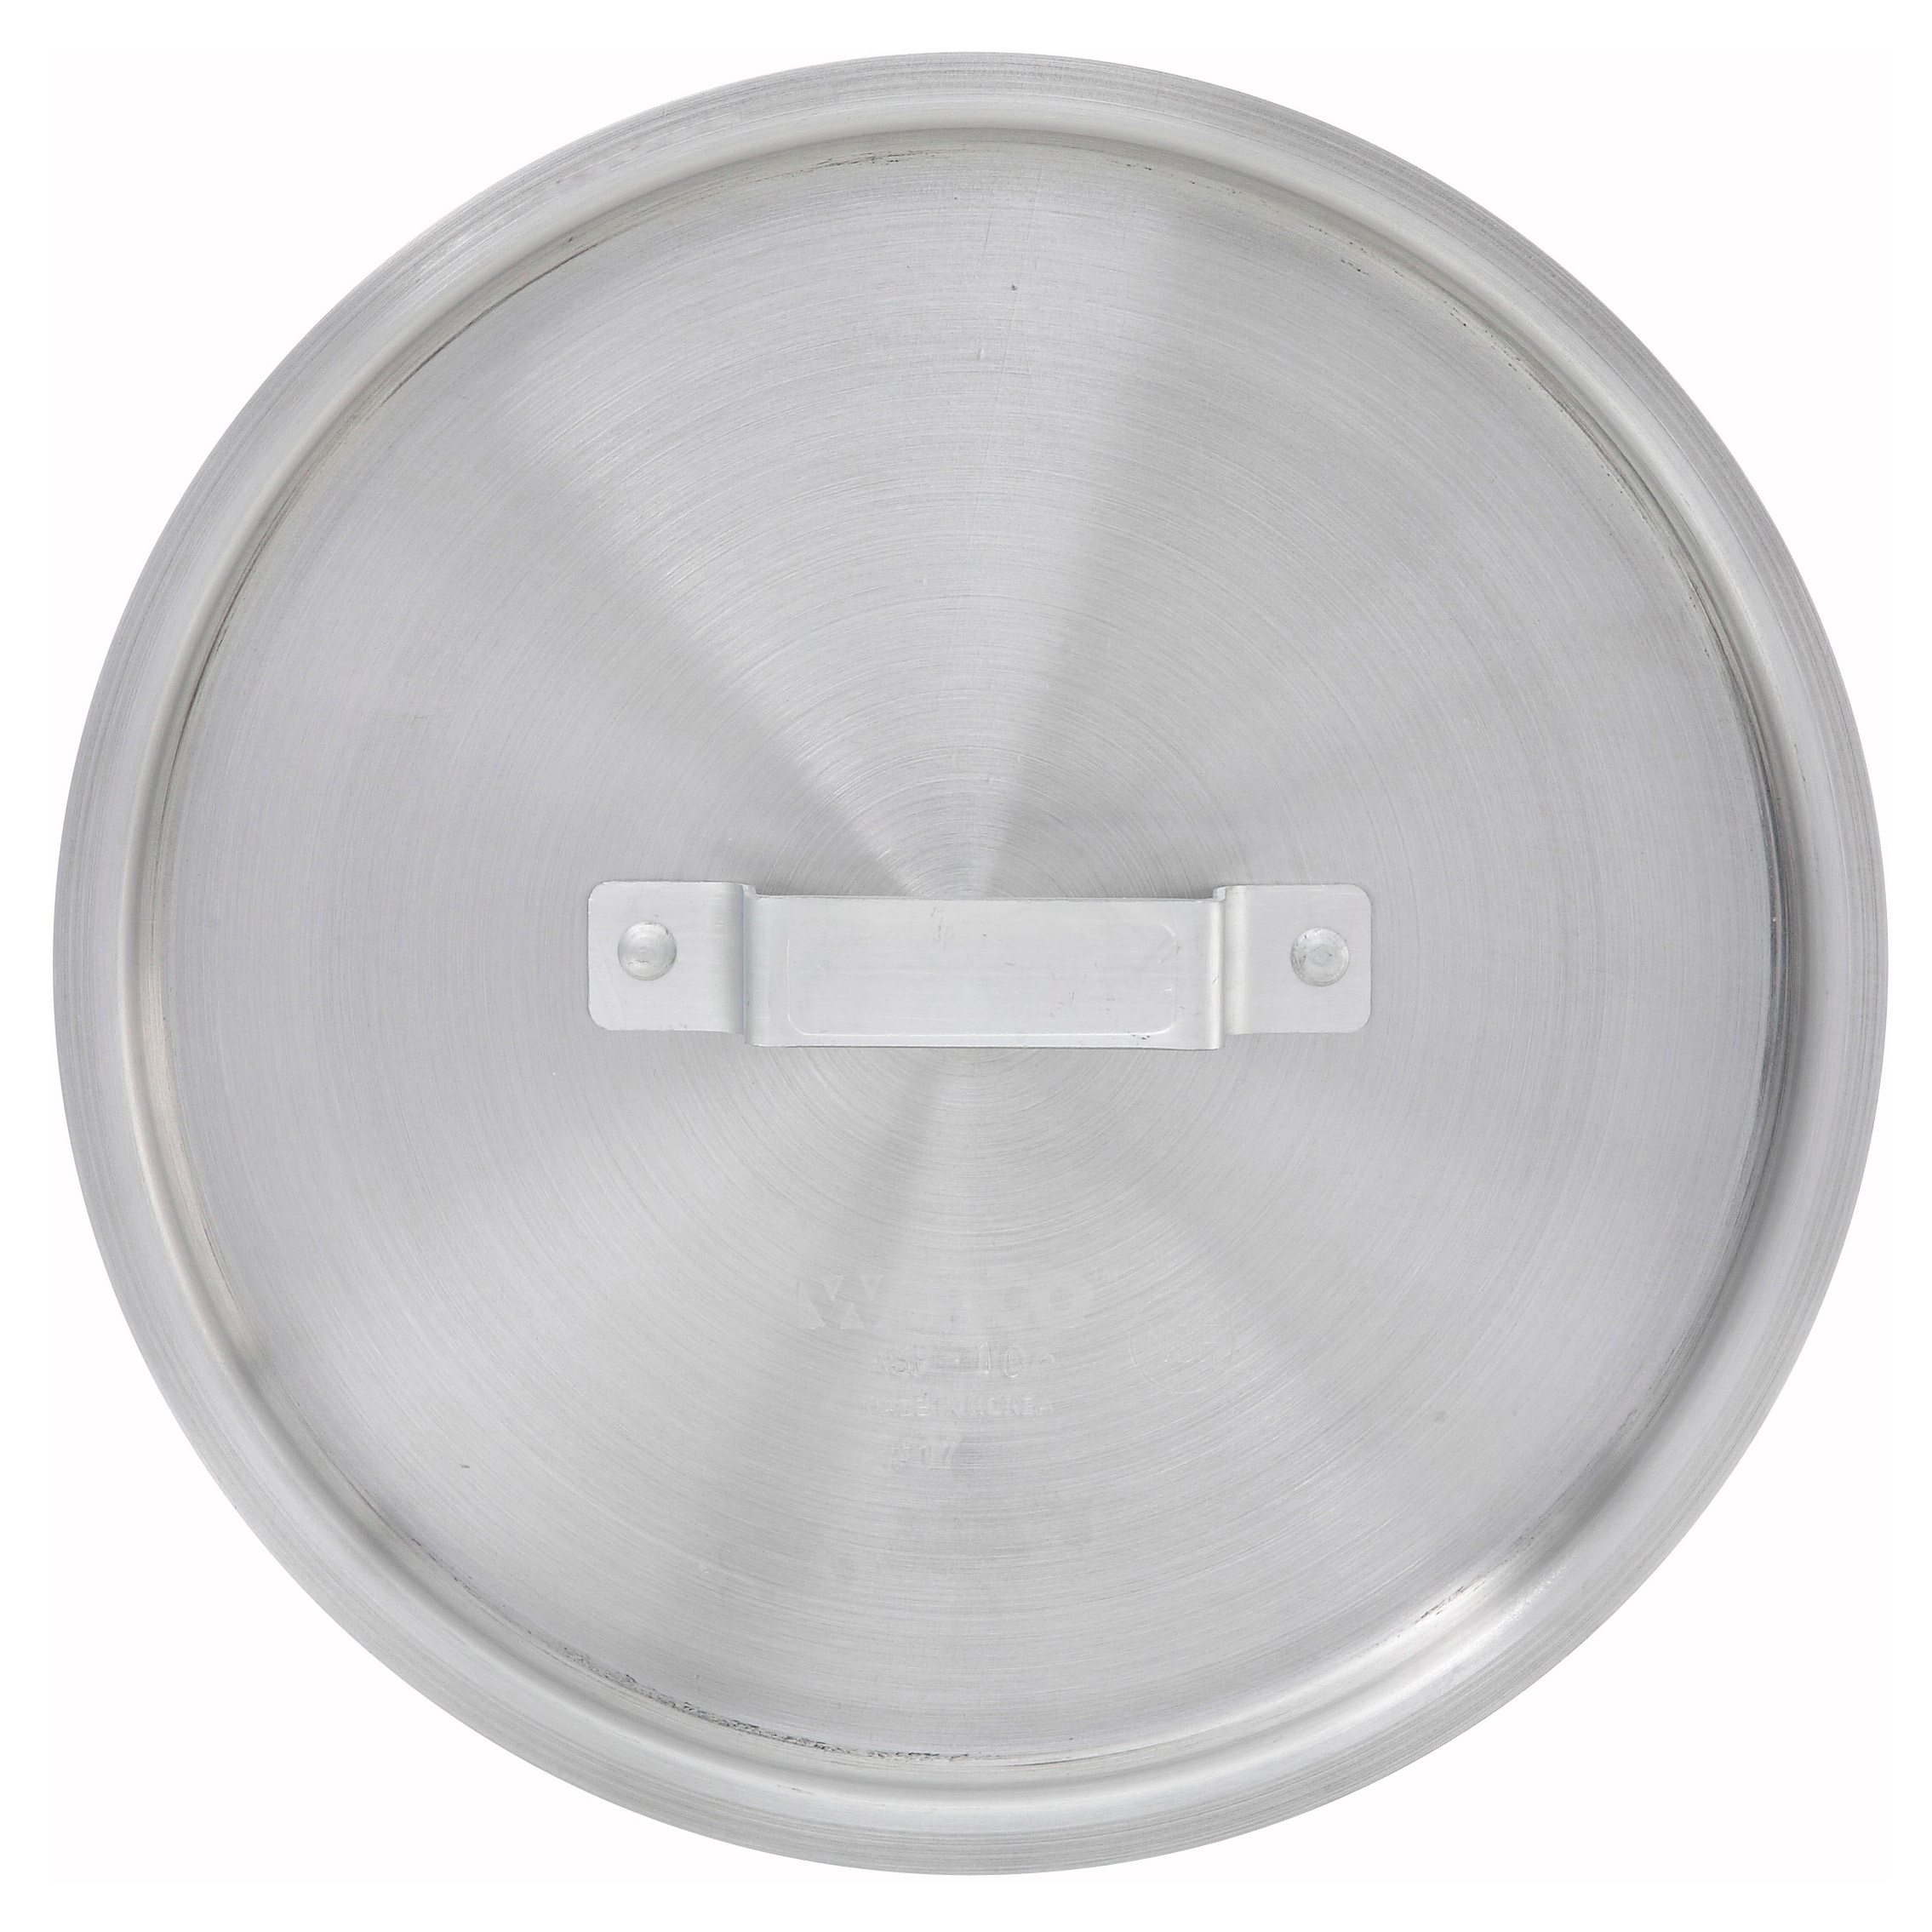 Winco ASP-10C cover / lid, cookware